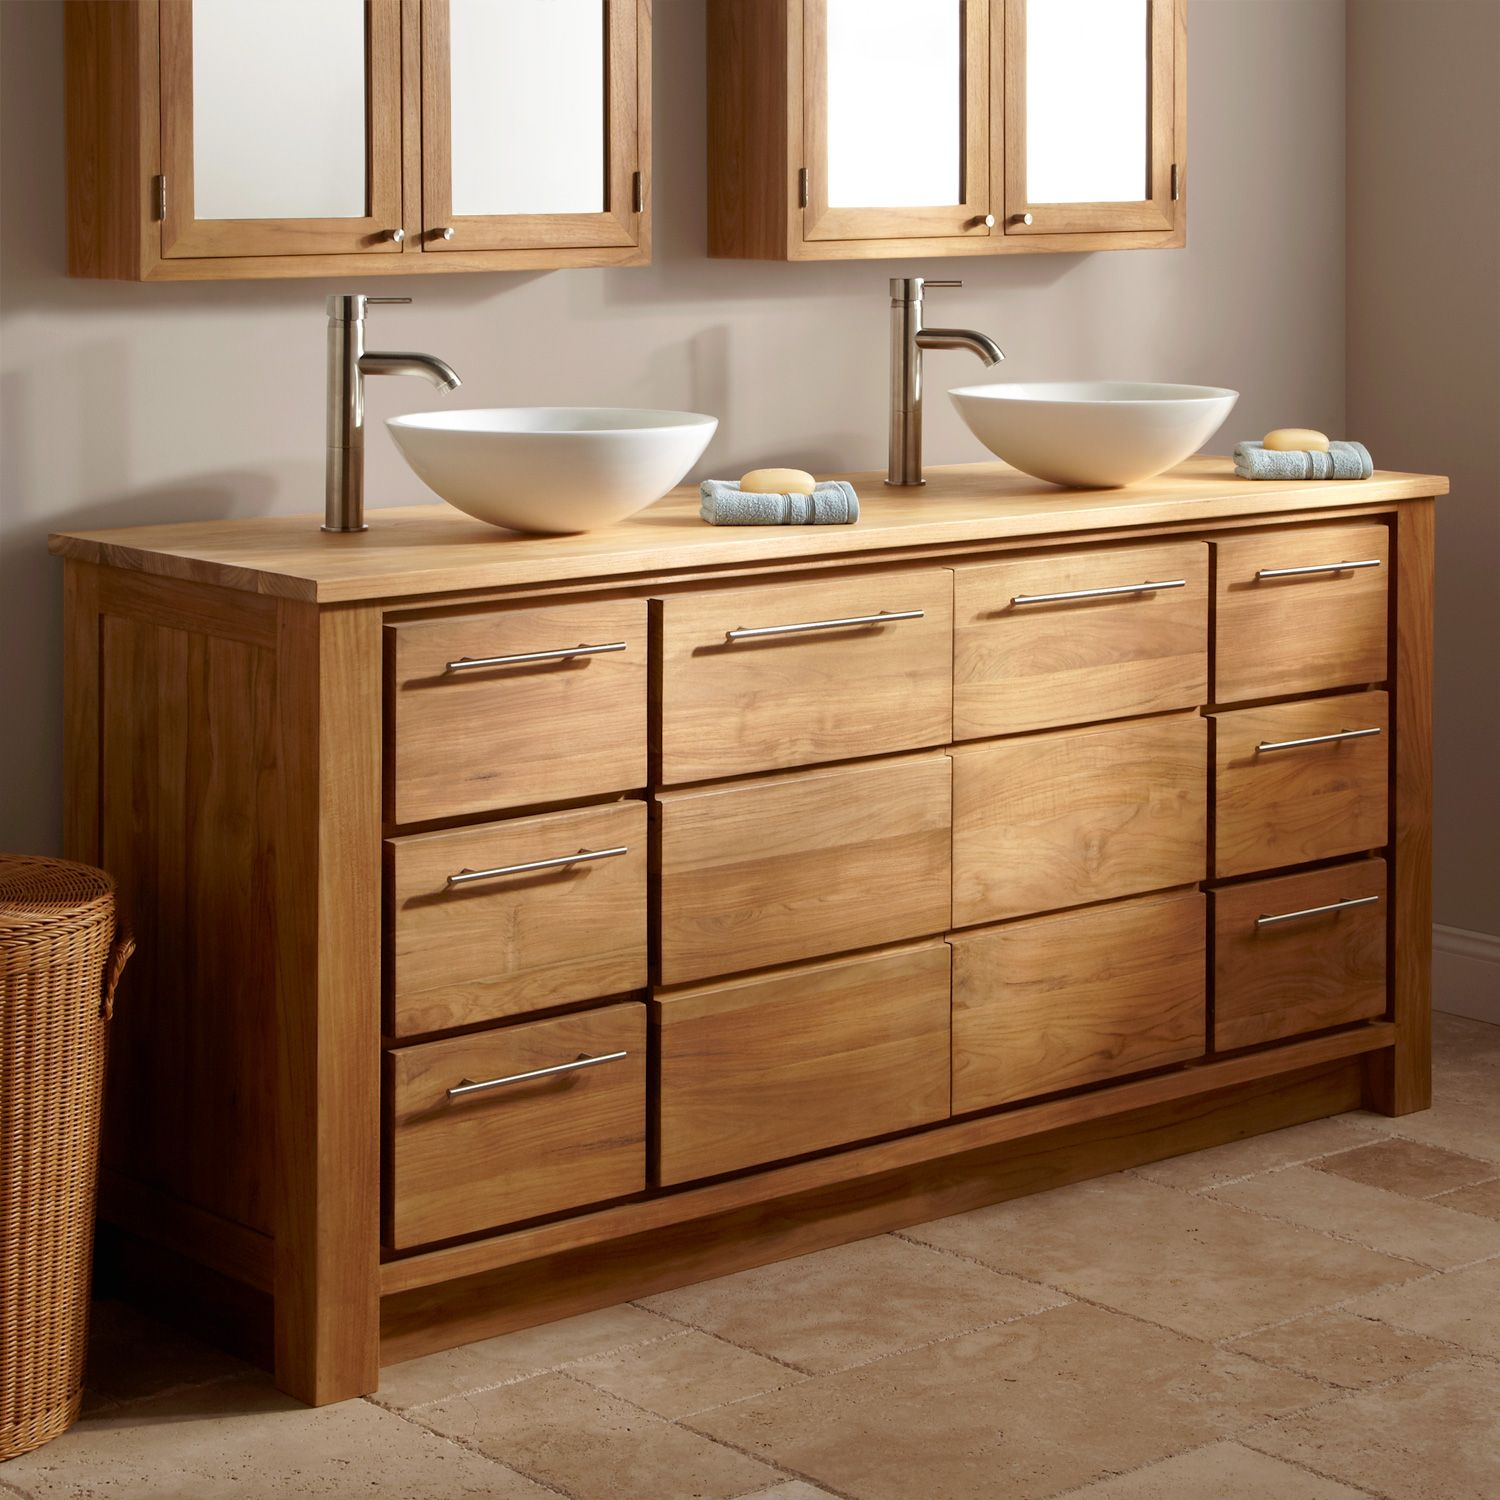 Bathroom sink cabinets ideas - Maximize Your Master Bathroom With The Venica Teak Double Vanity Created For Use With Two Vessel Sinks This Vanity Has Two Large Center Doors And Four